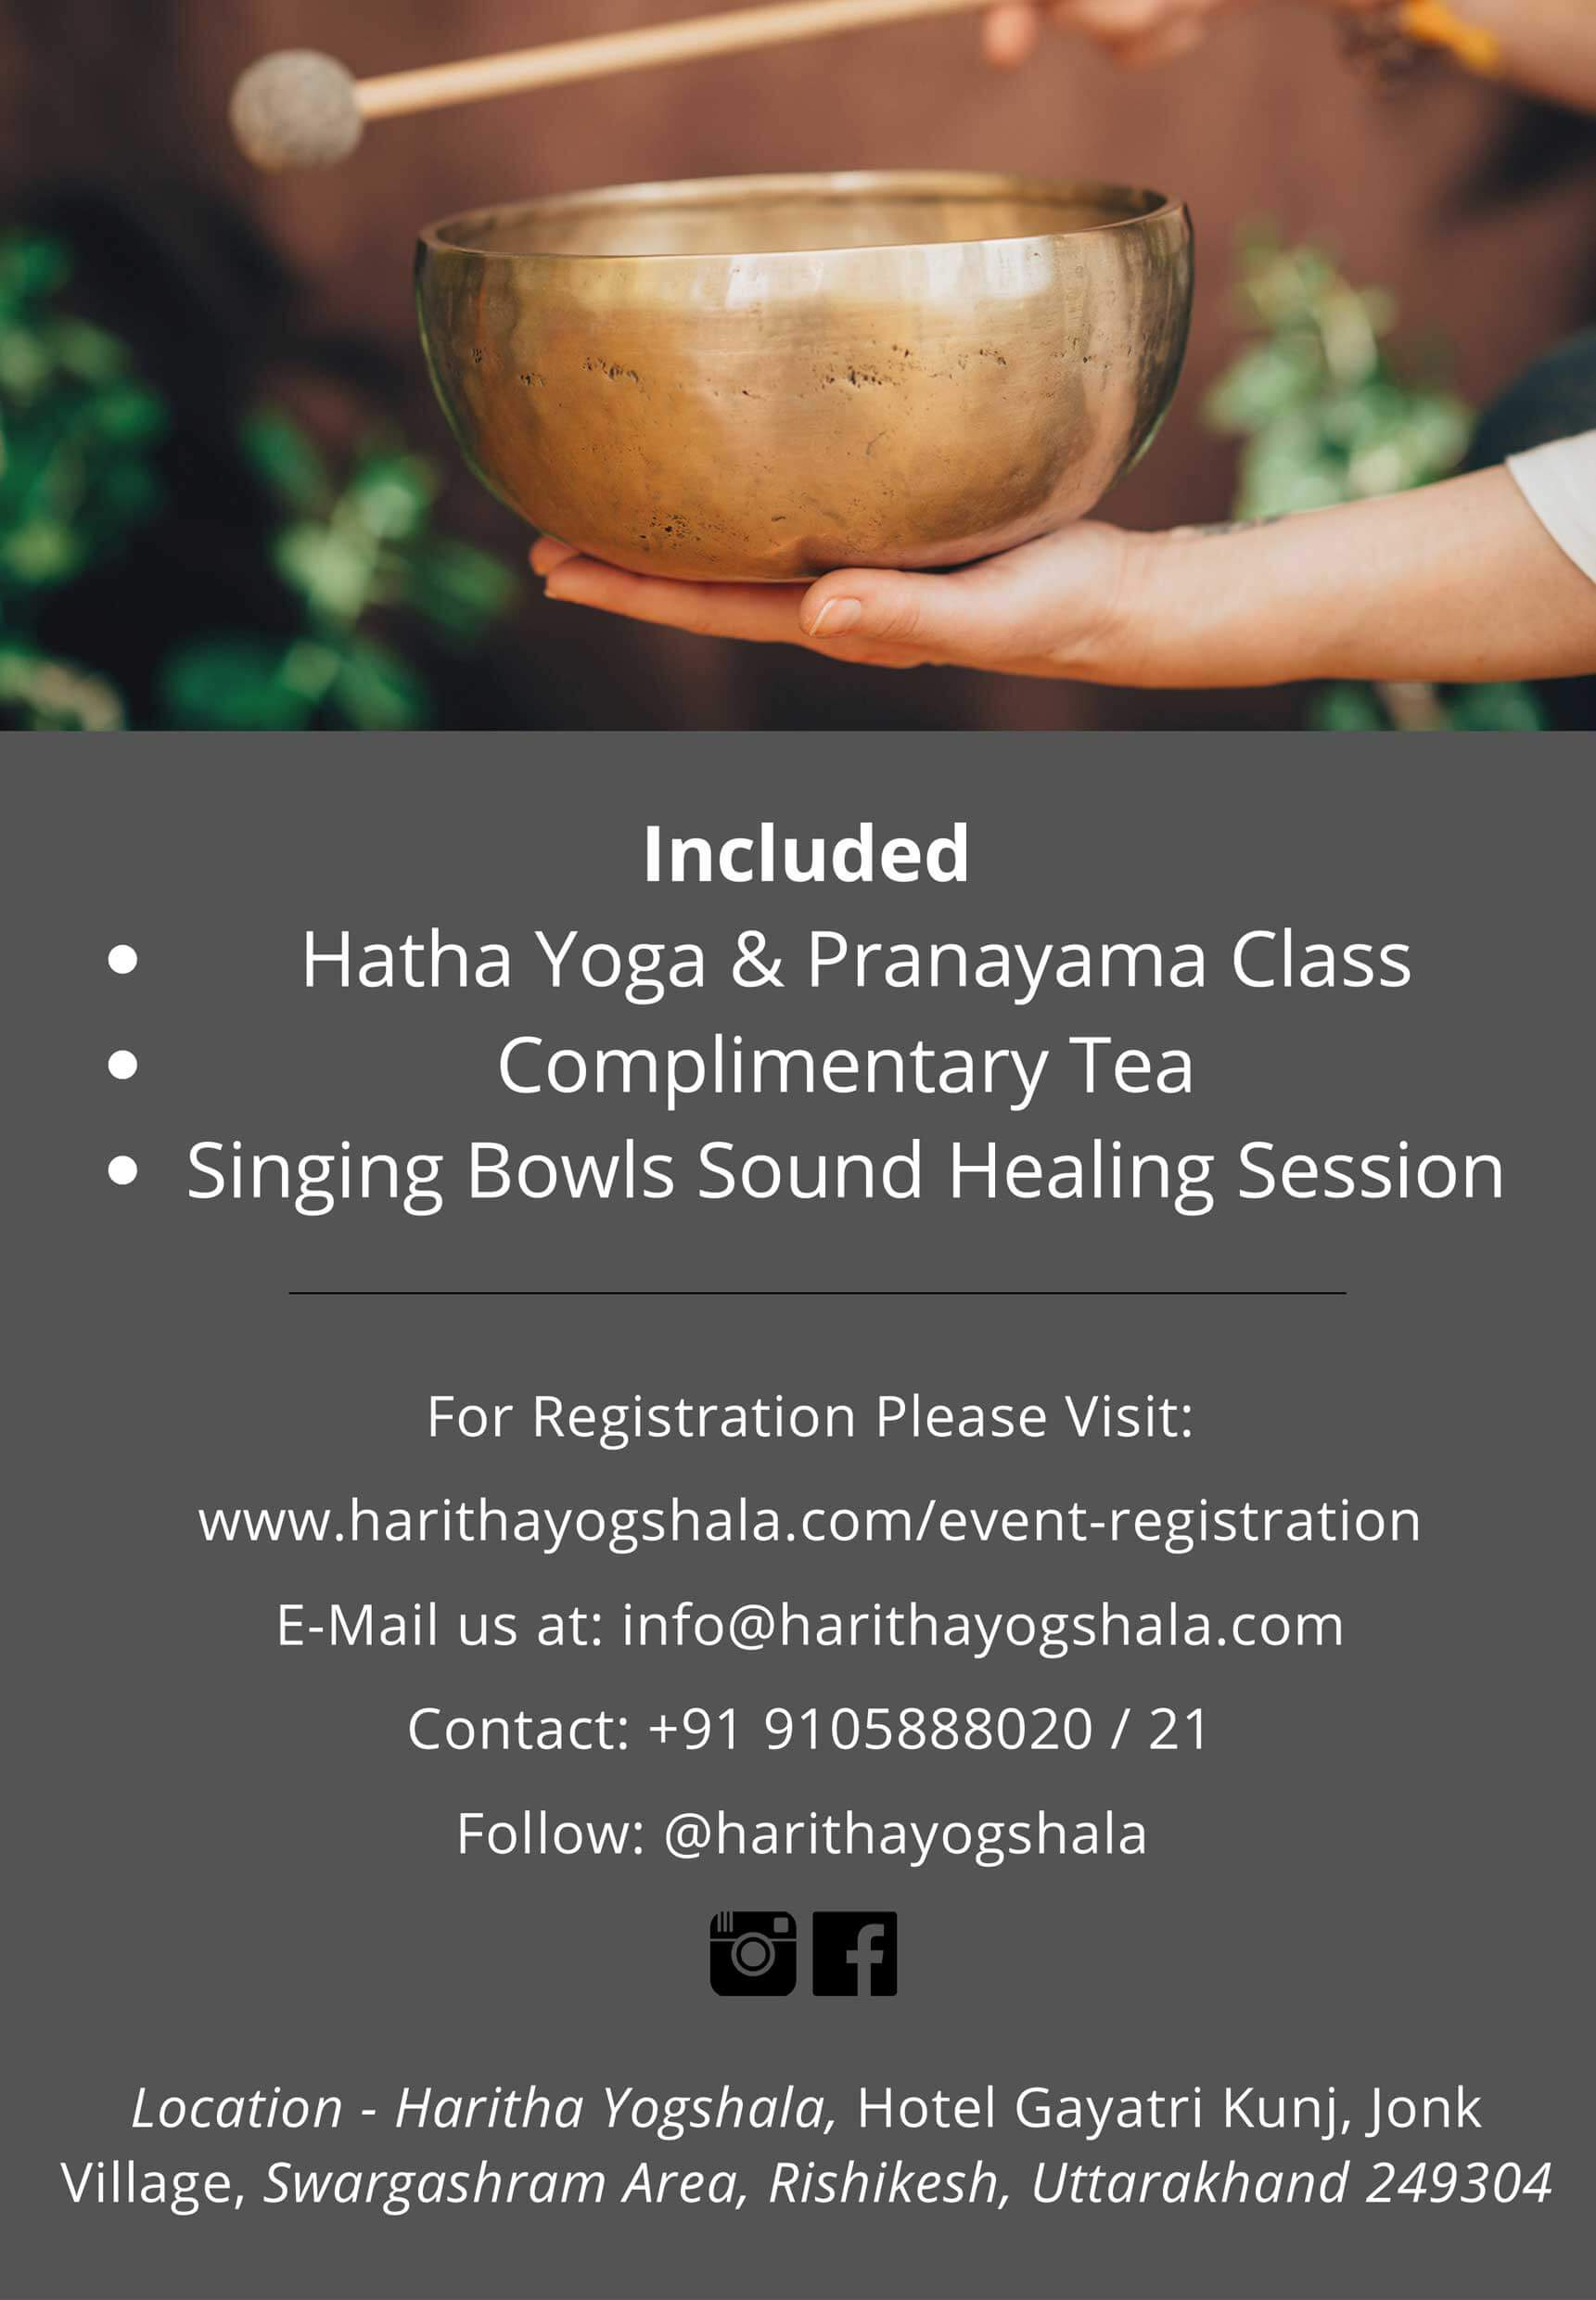 Free Sound Healing session in Rishikesh, India